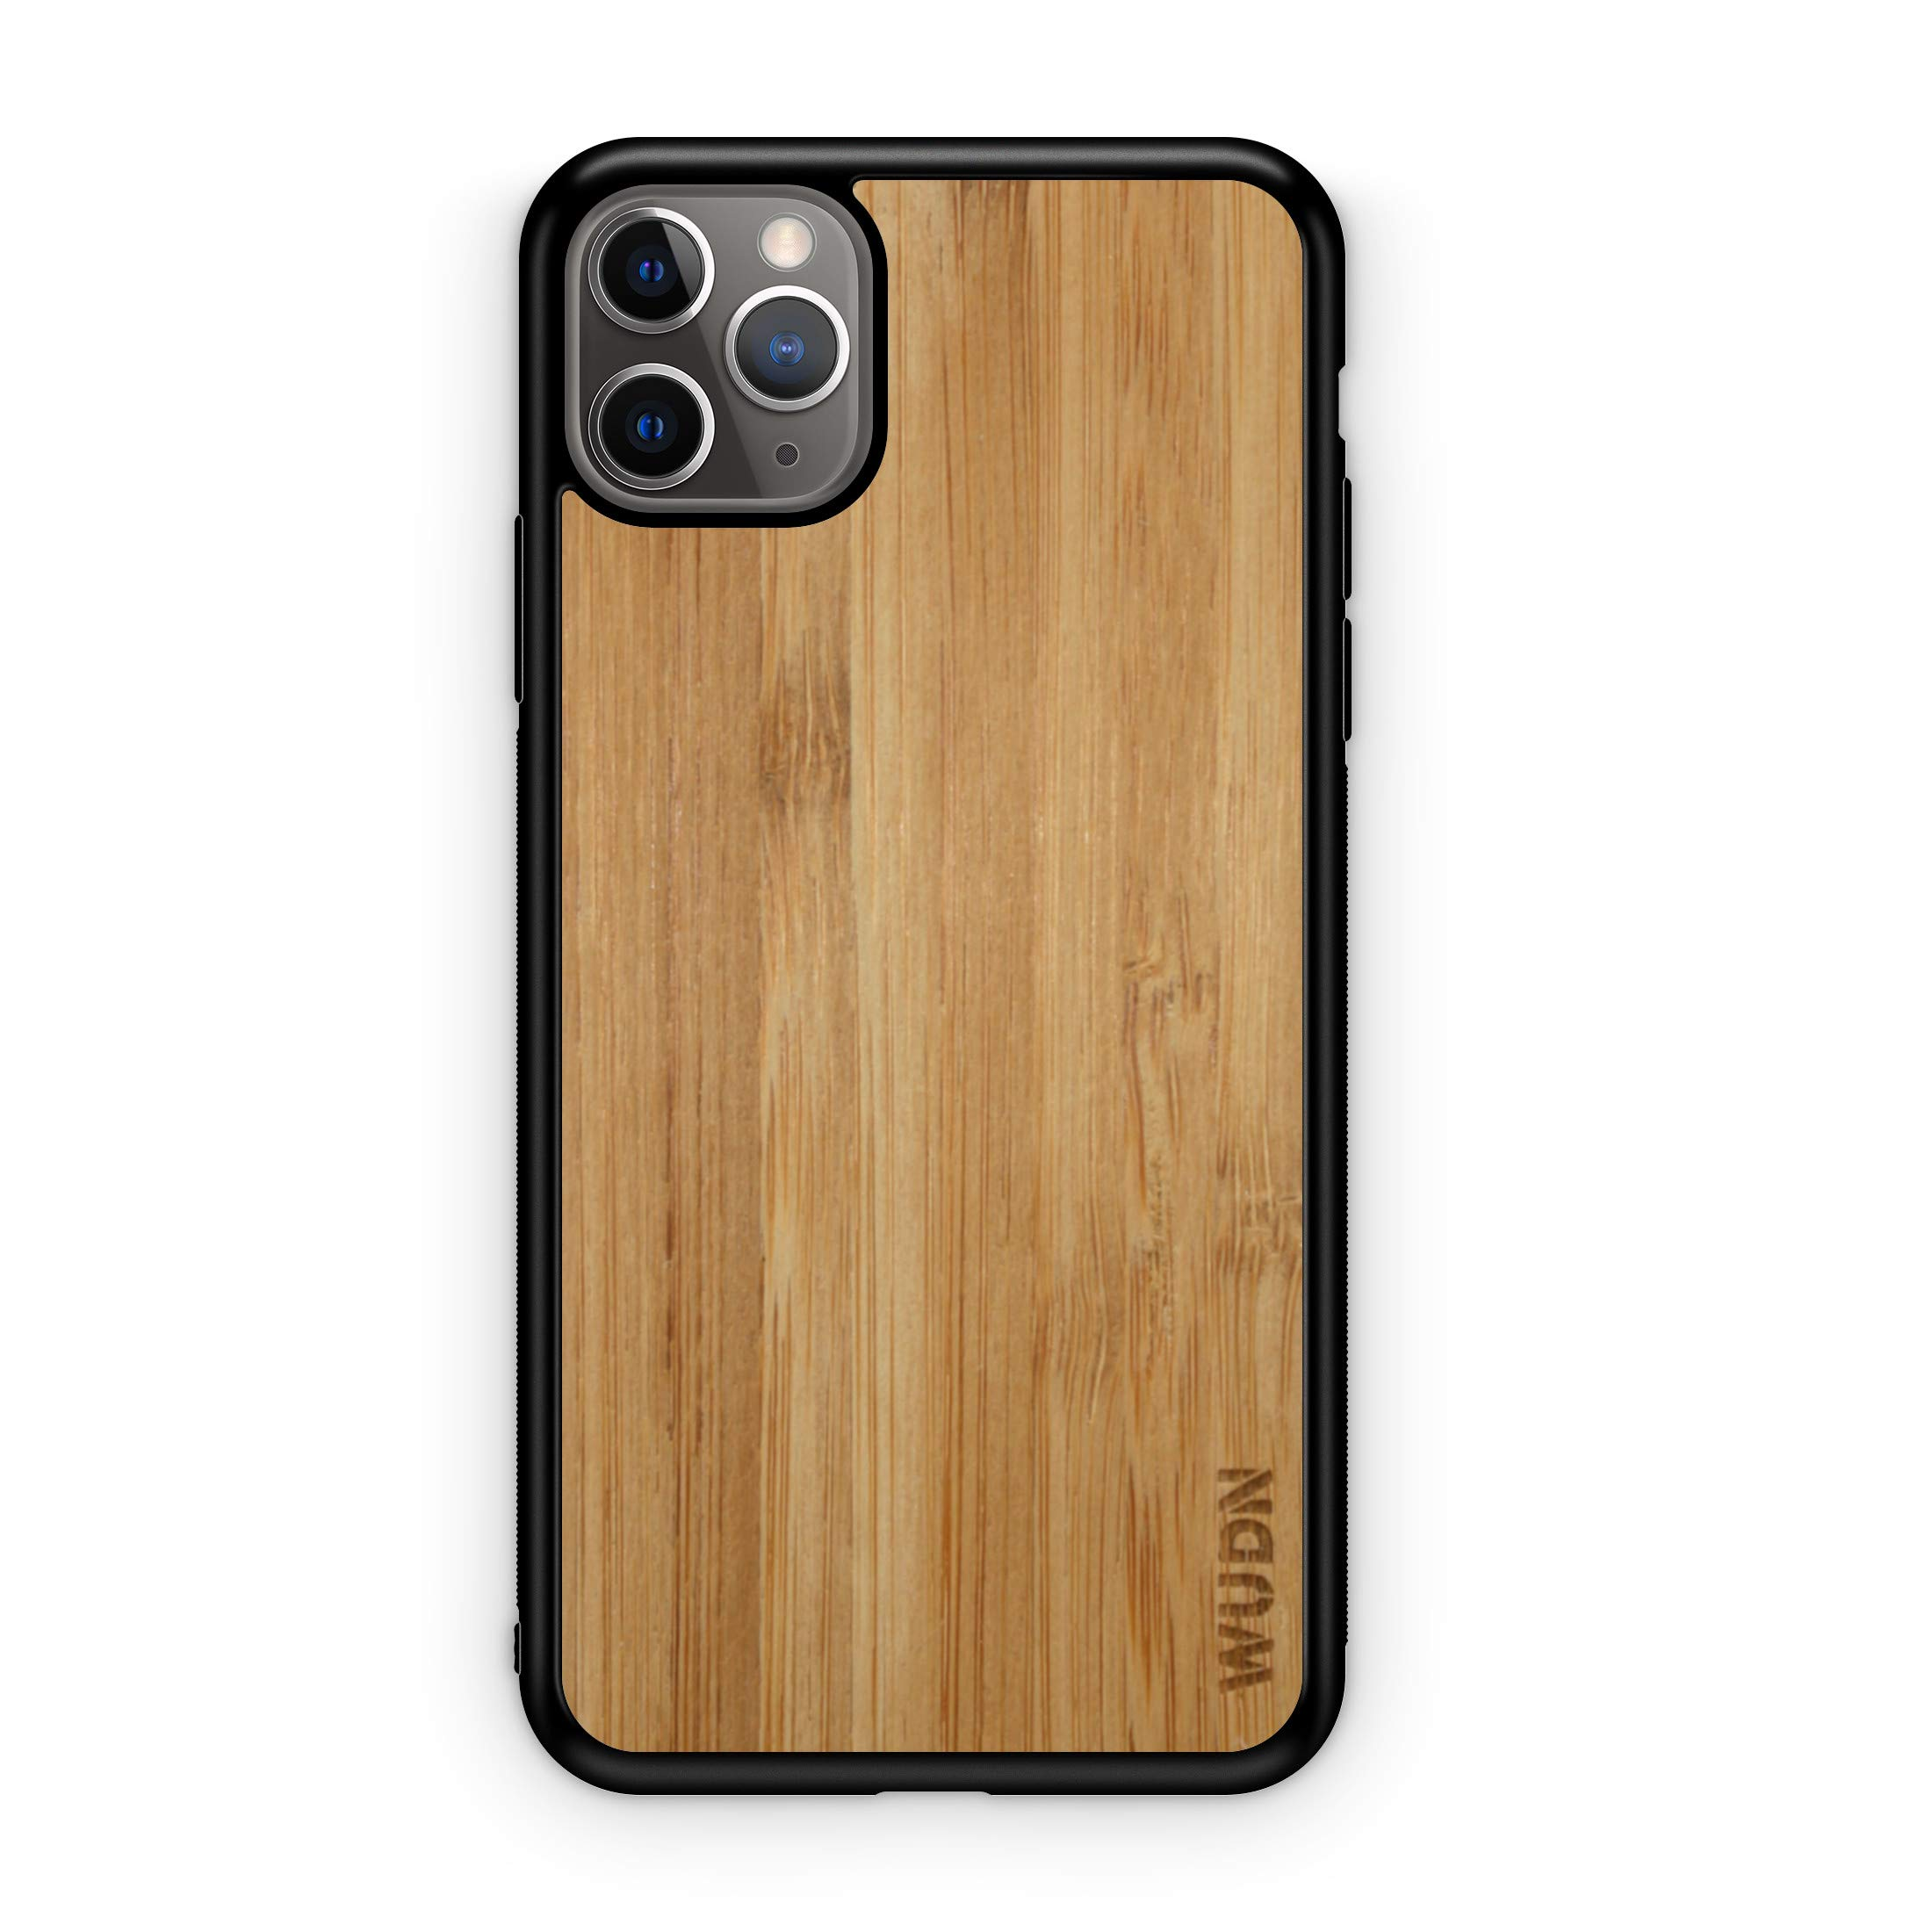 WUDN - Real Wooden Phone Case in Carmalized Bamboo, Compatible with iPhone 11 Pro Max, 6.5